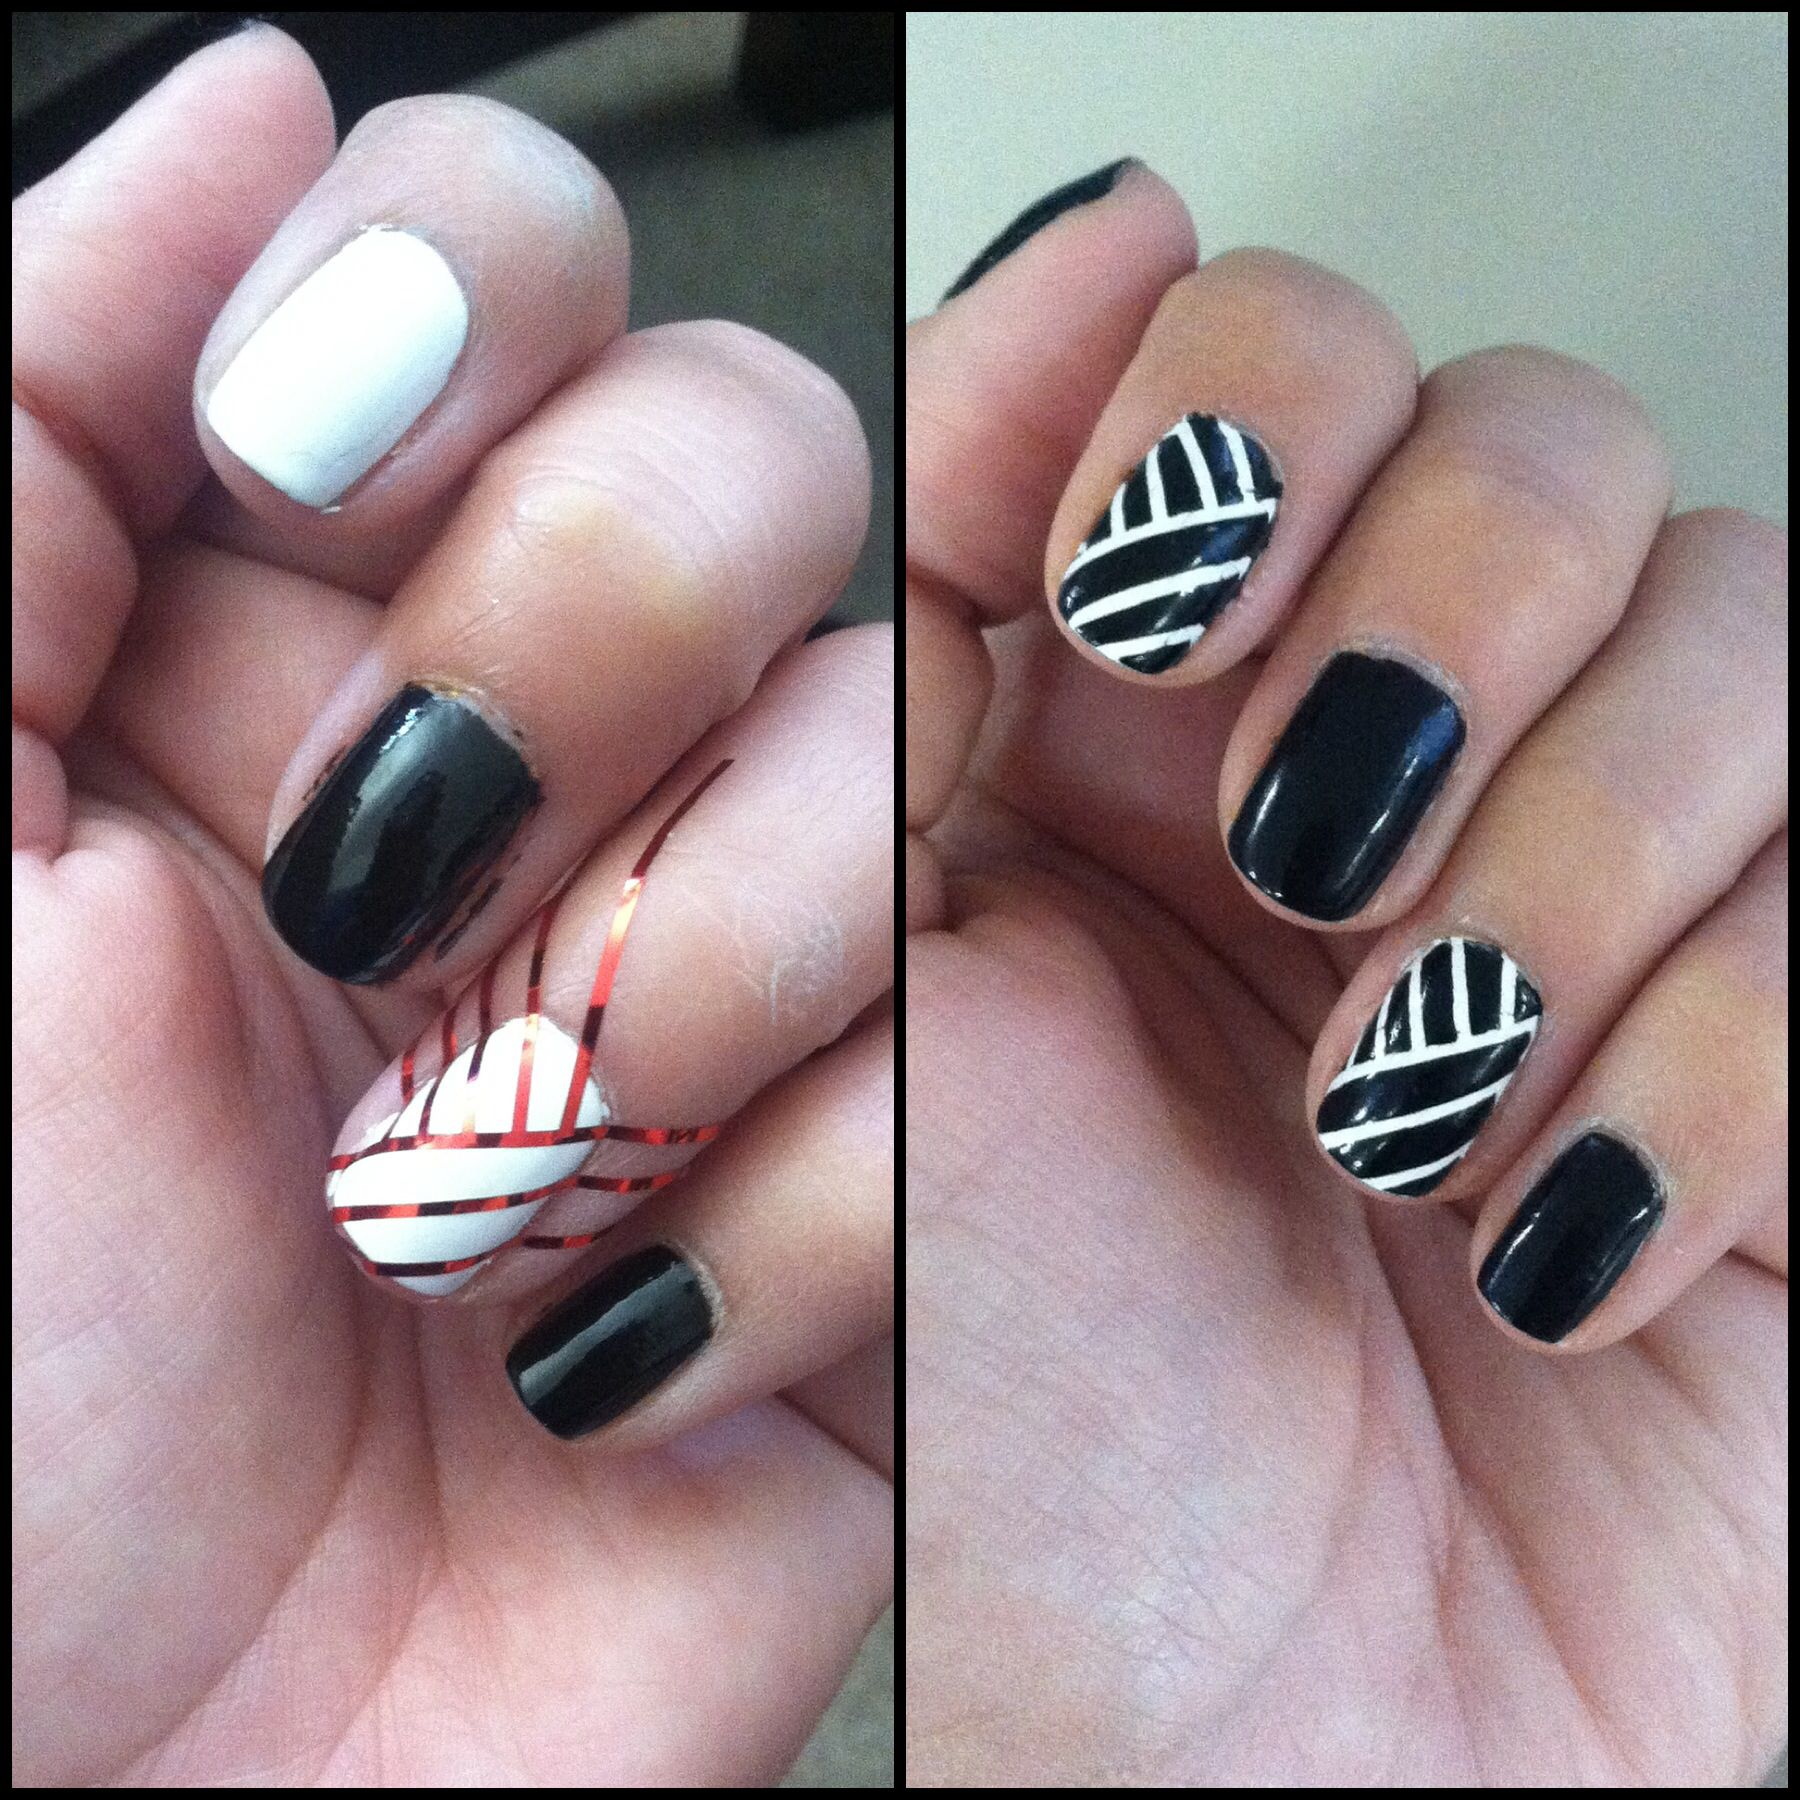 Striping tape nail design | MyCreations | Pinterest | Tape nail ...